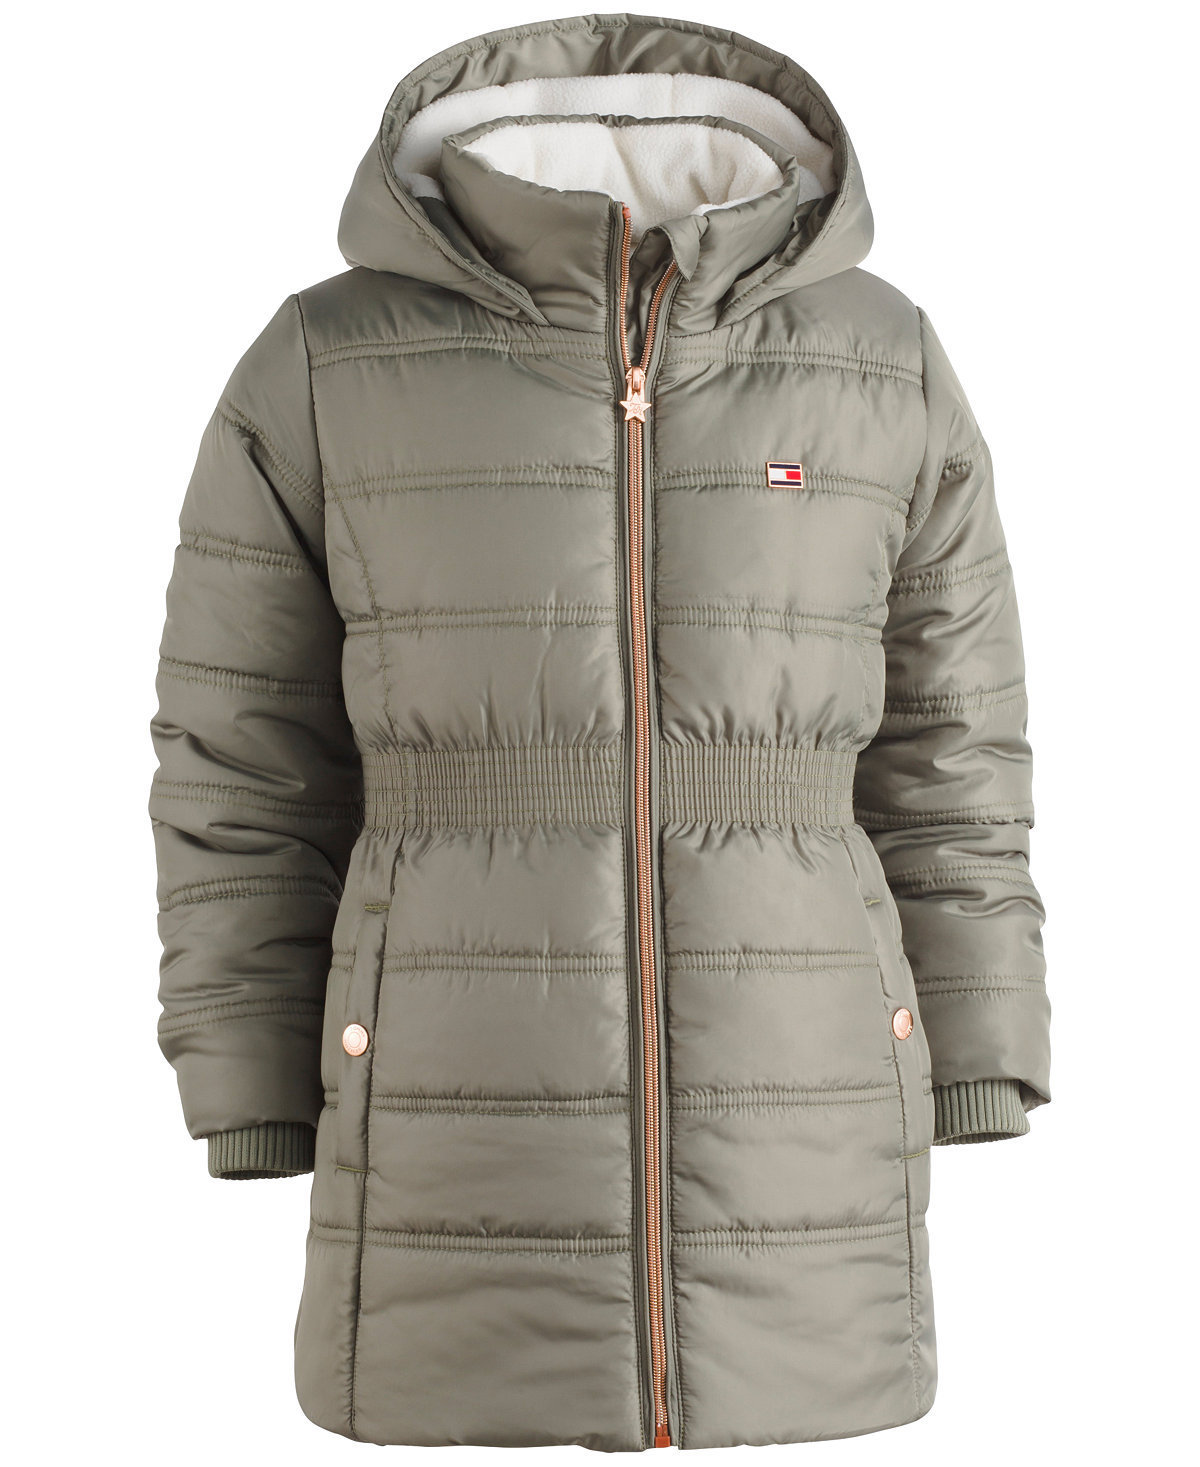 【Tommy Hilfiger 】Hooded Quilted Puffer Coat ロゴ 大人OK